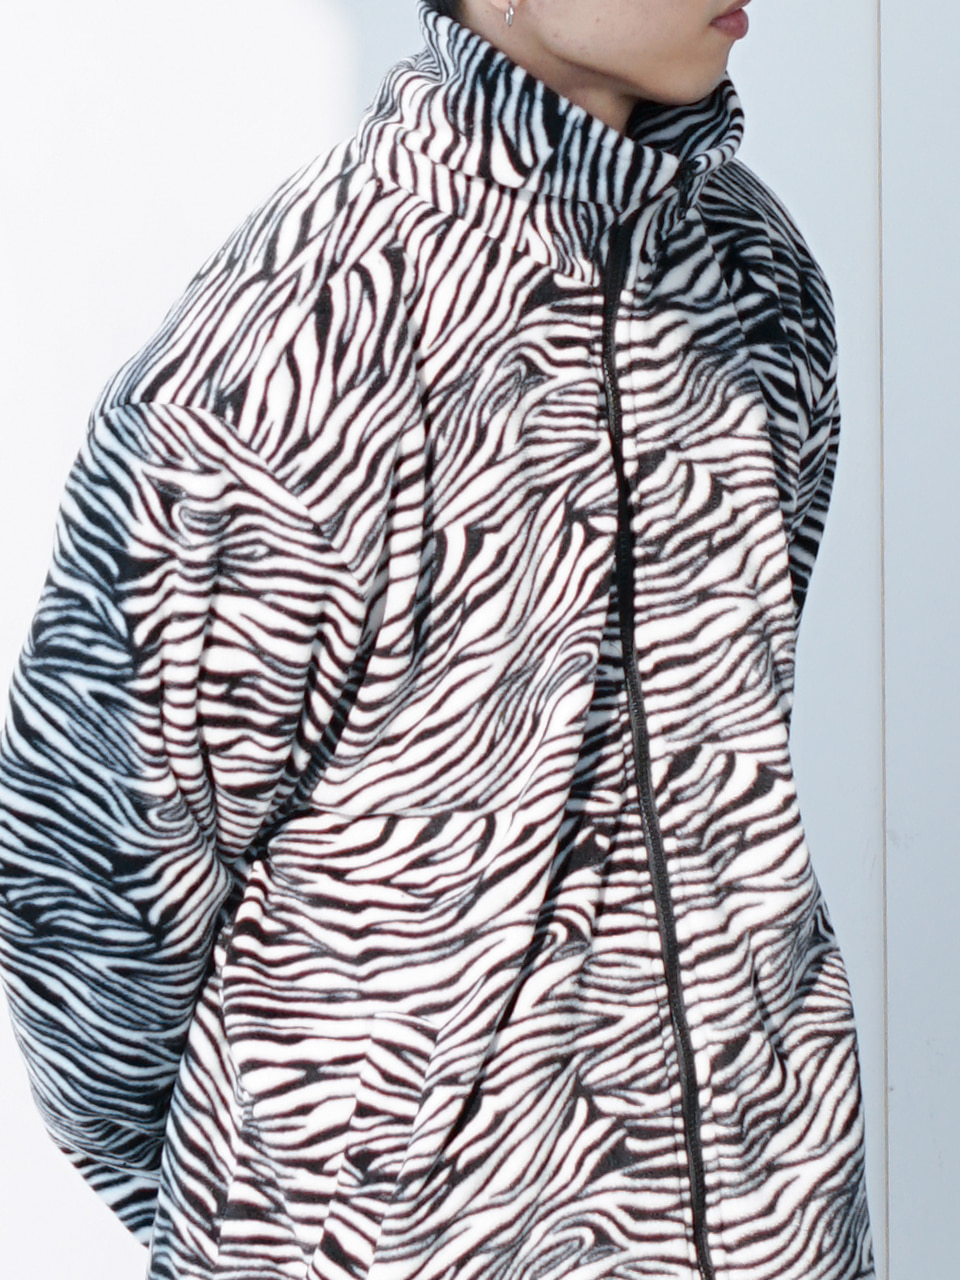 Karen Zebra Patterned Fleece Jacket